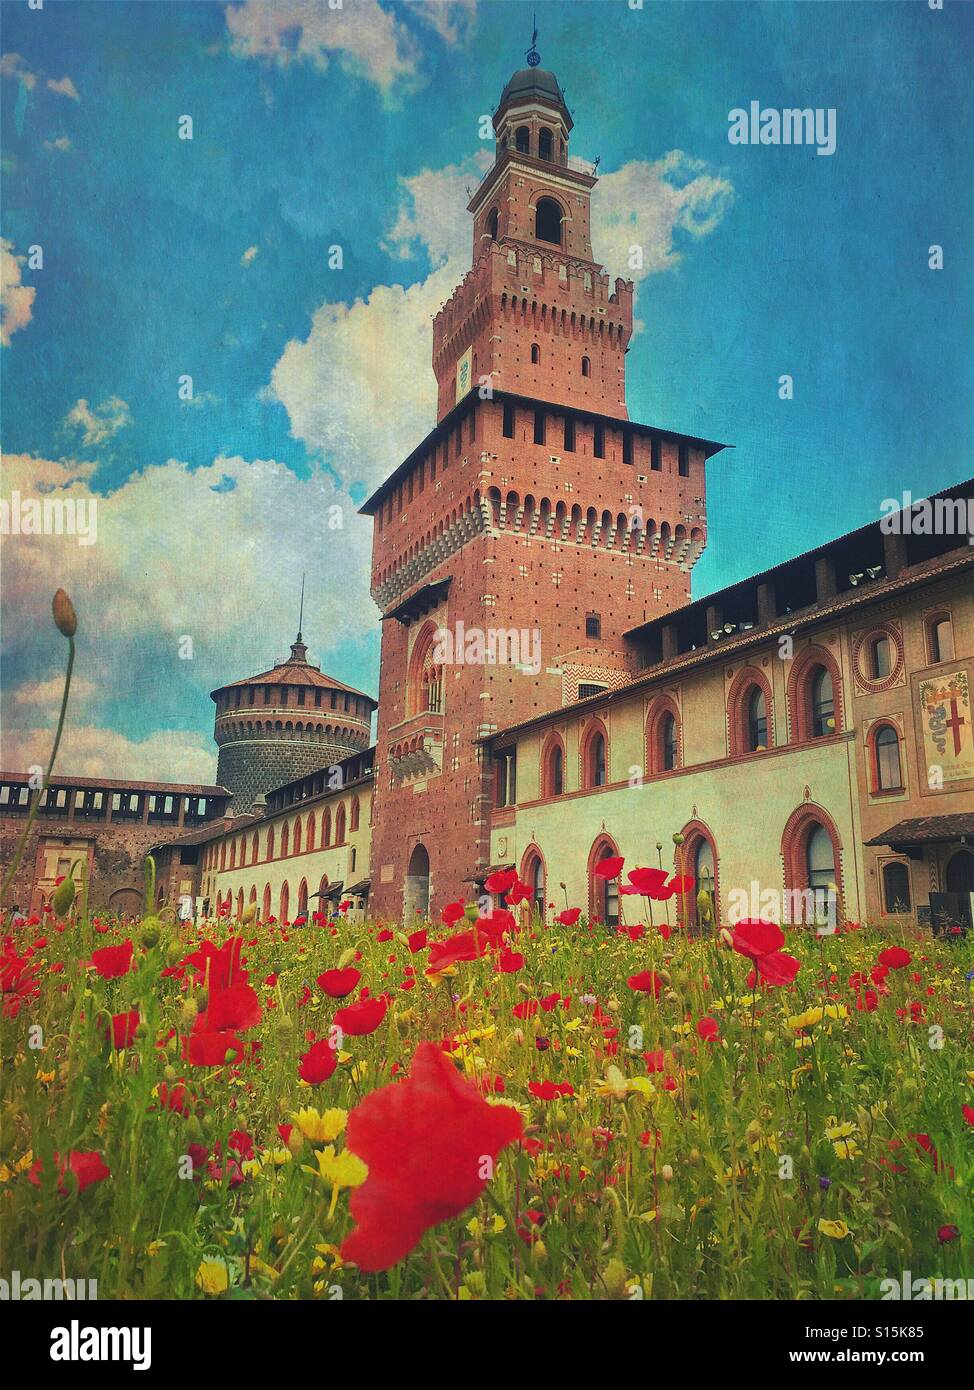 View of the beautiful Sforza Castle in Milan, Italy, with red poppy flower field in the foreground. Vintage paper - Stock Image